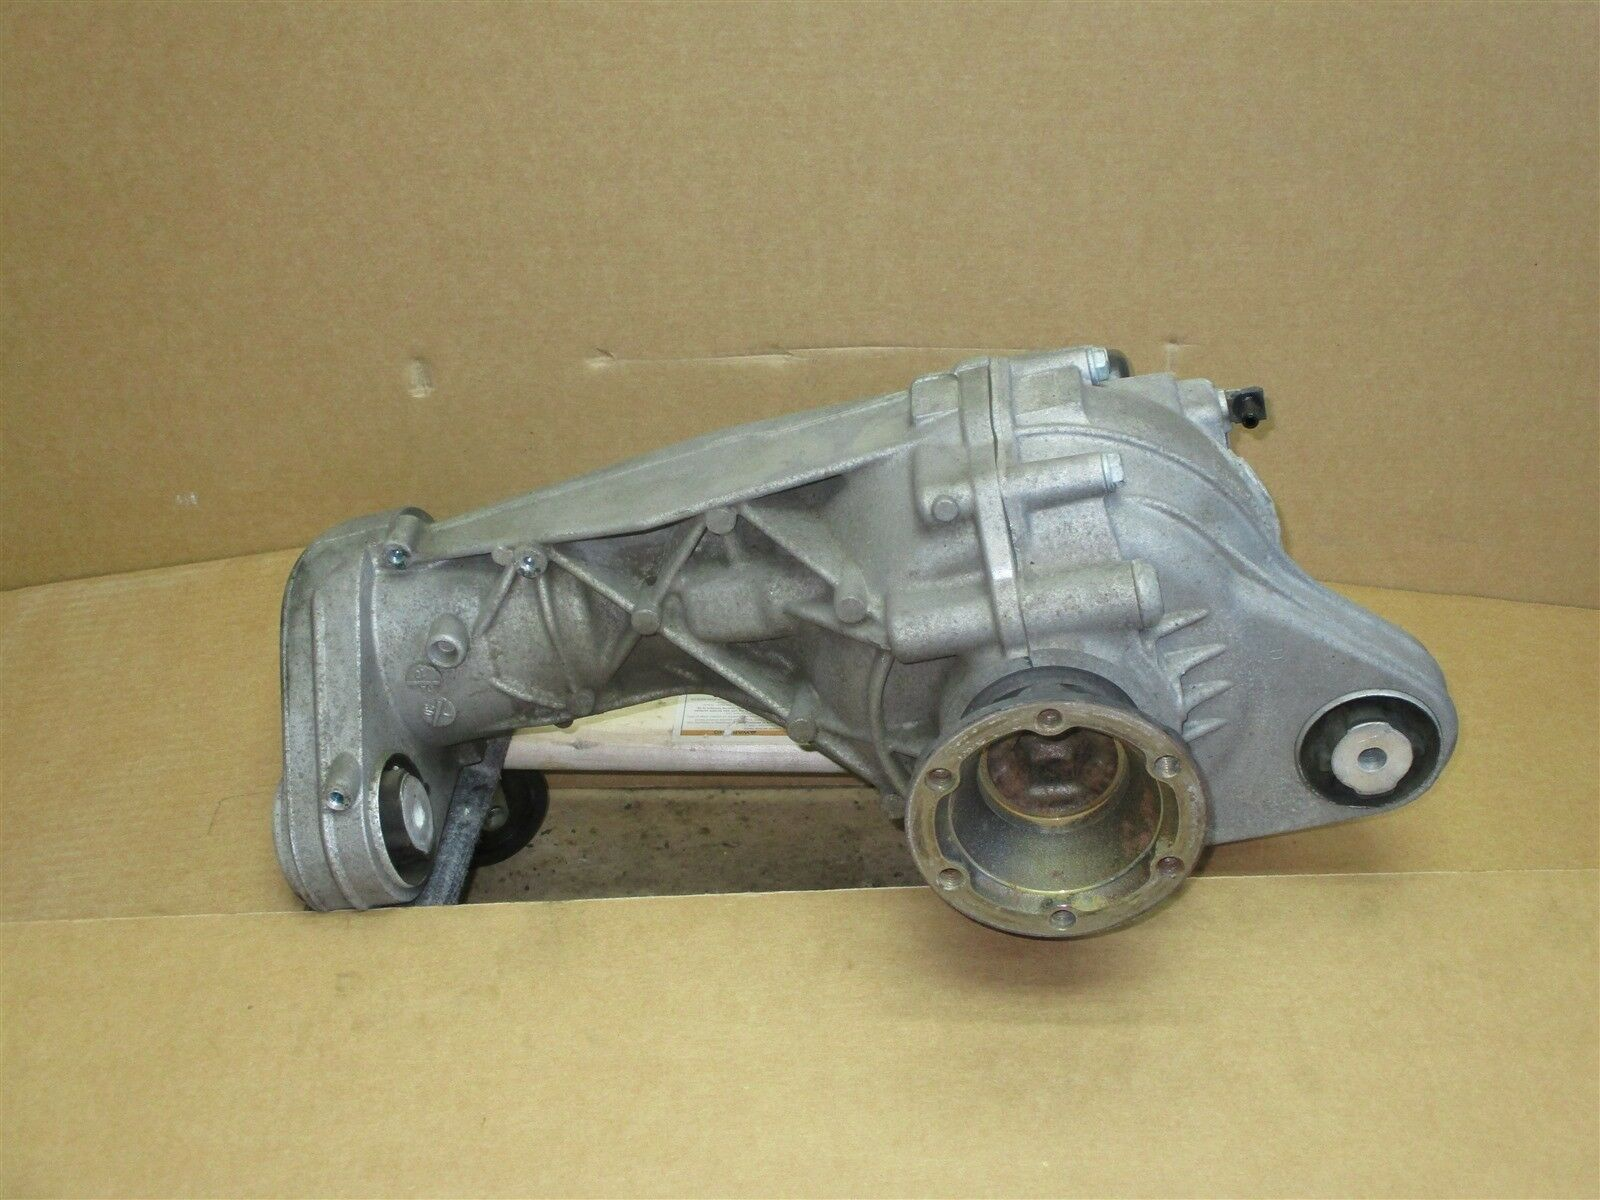 05 Cayenne S AWD Porsche 955 FRONT DIFFERENTIAL 116,472